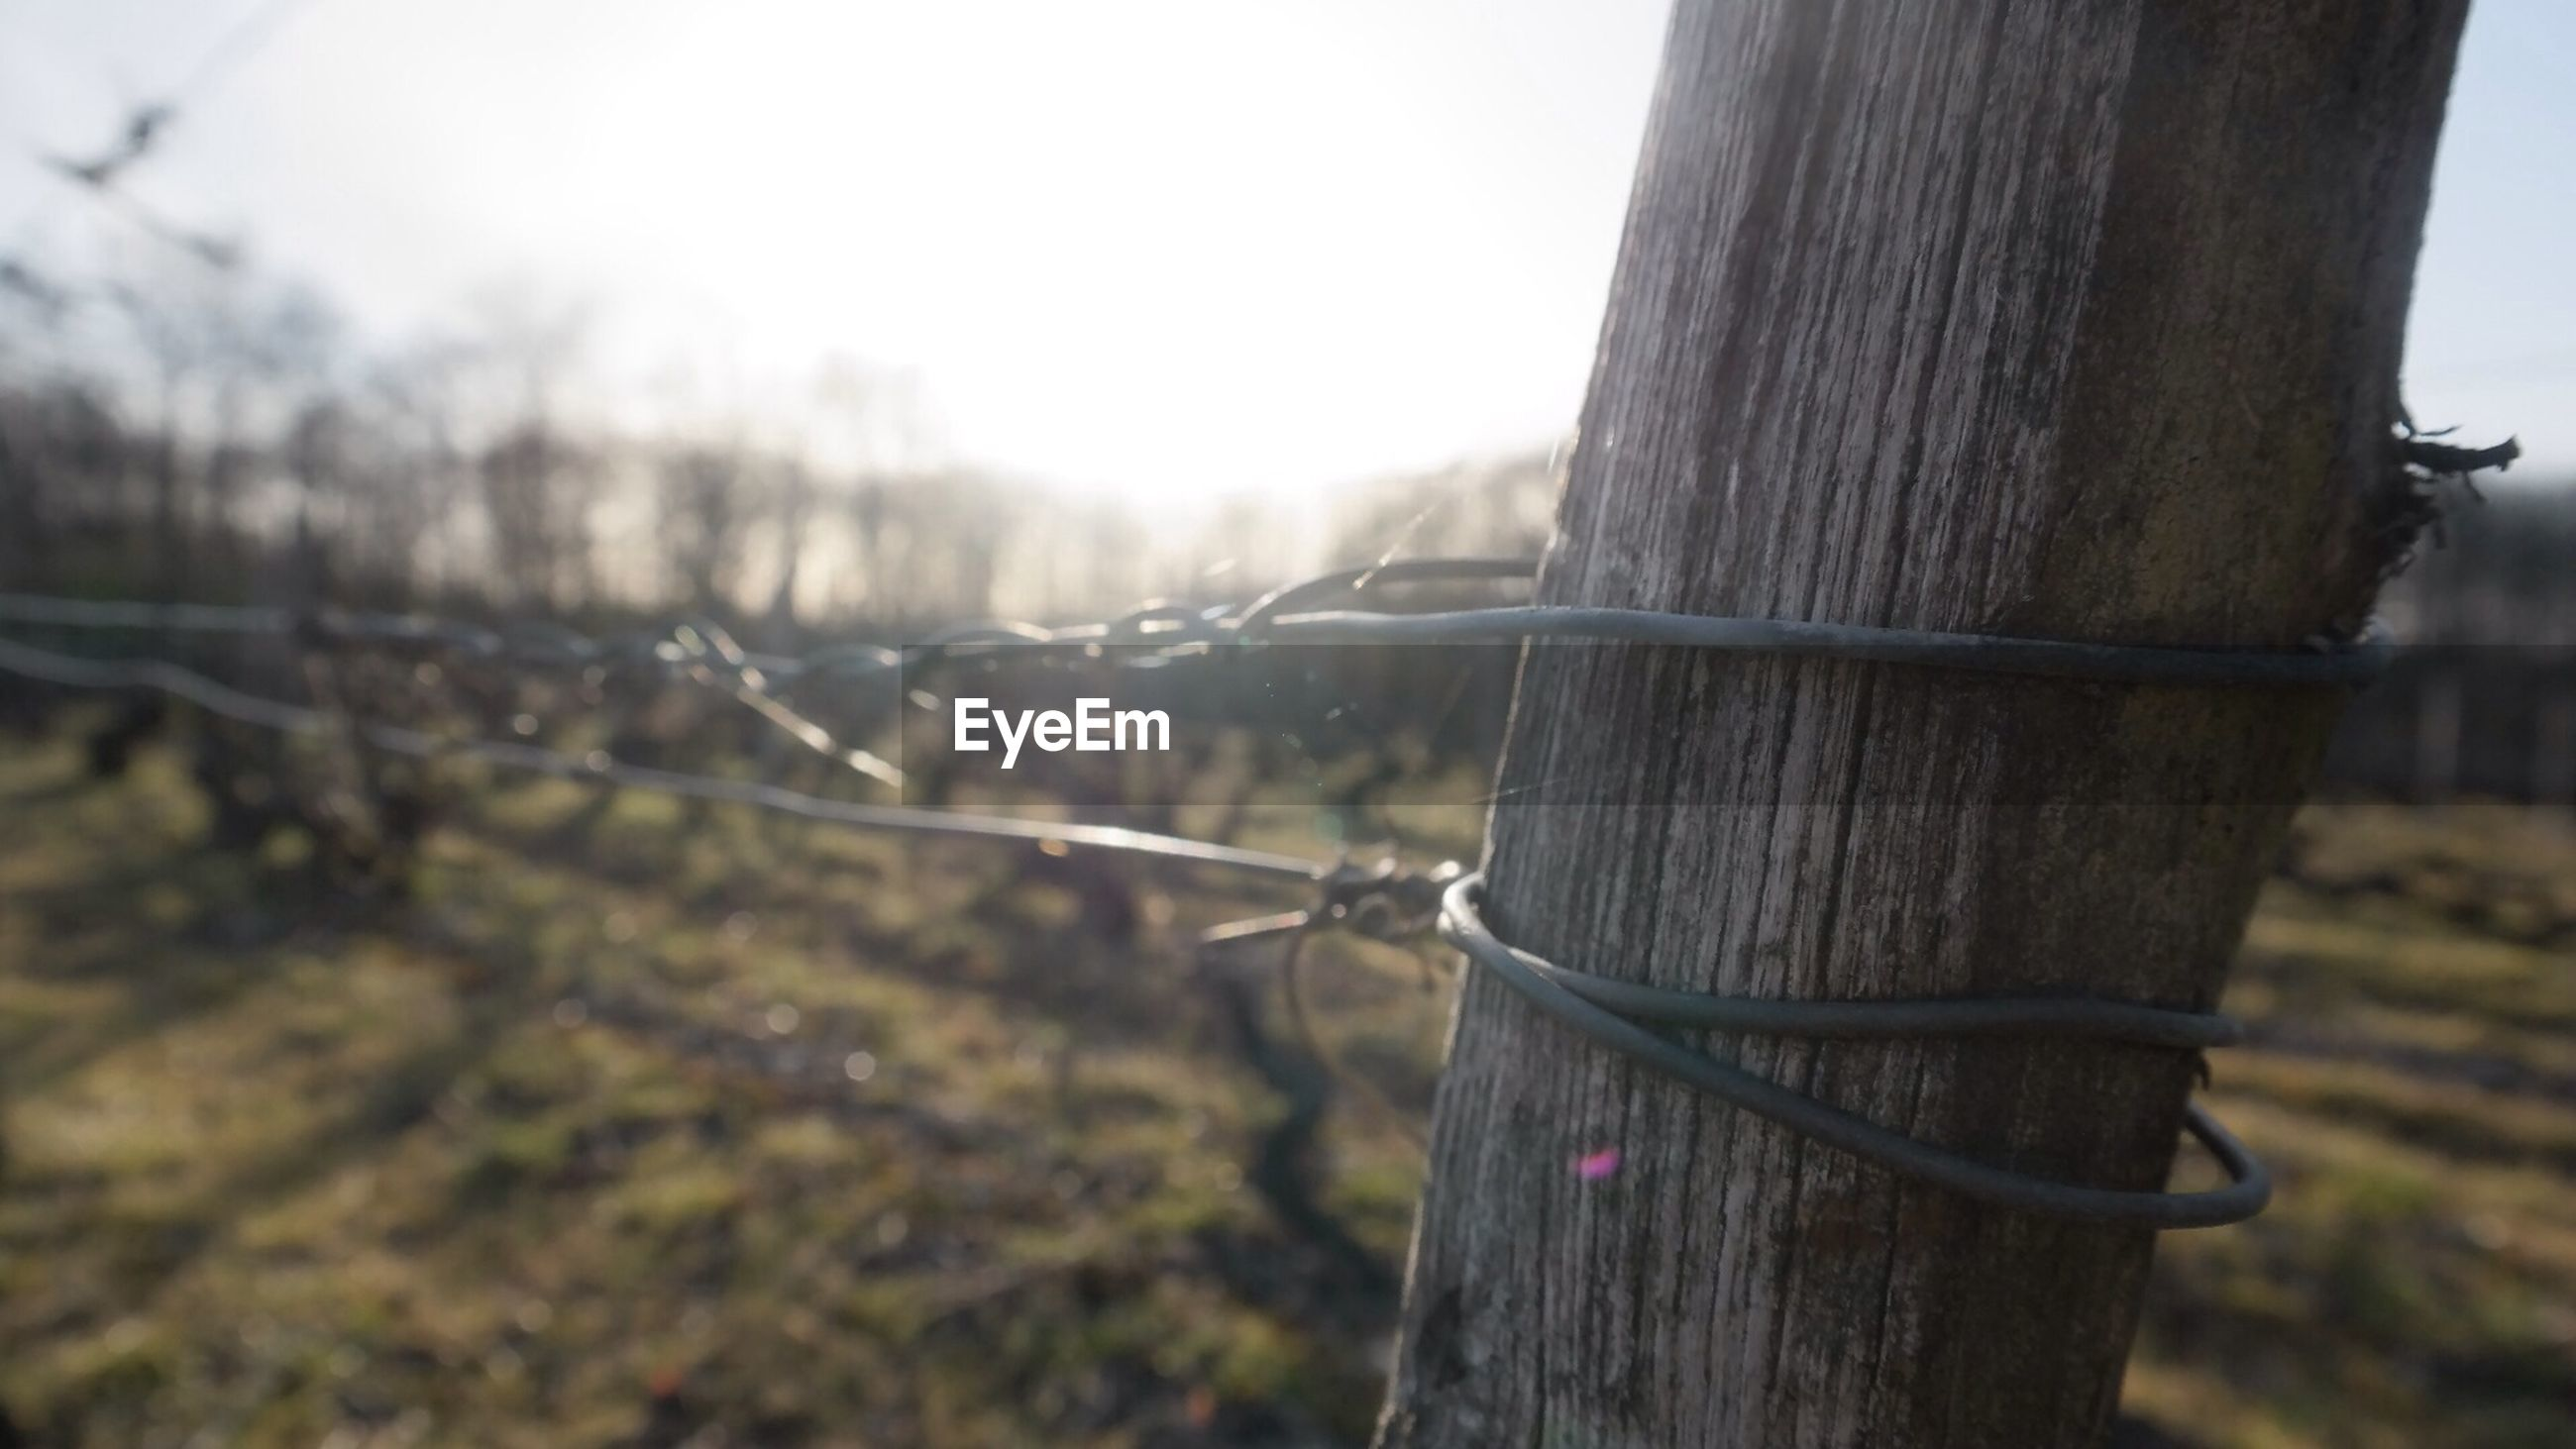 Close-up of fence on blurred countryside landscape